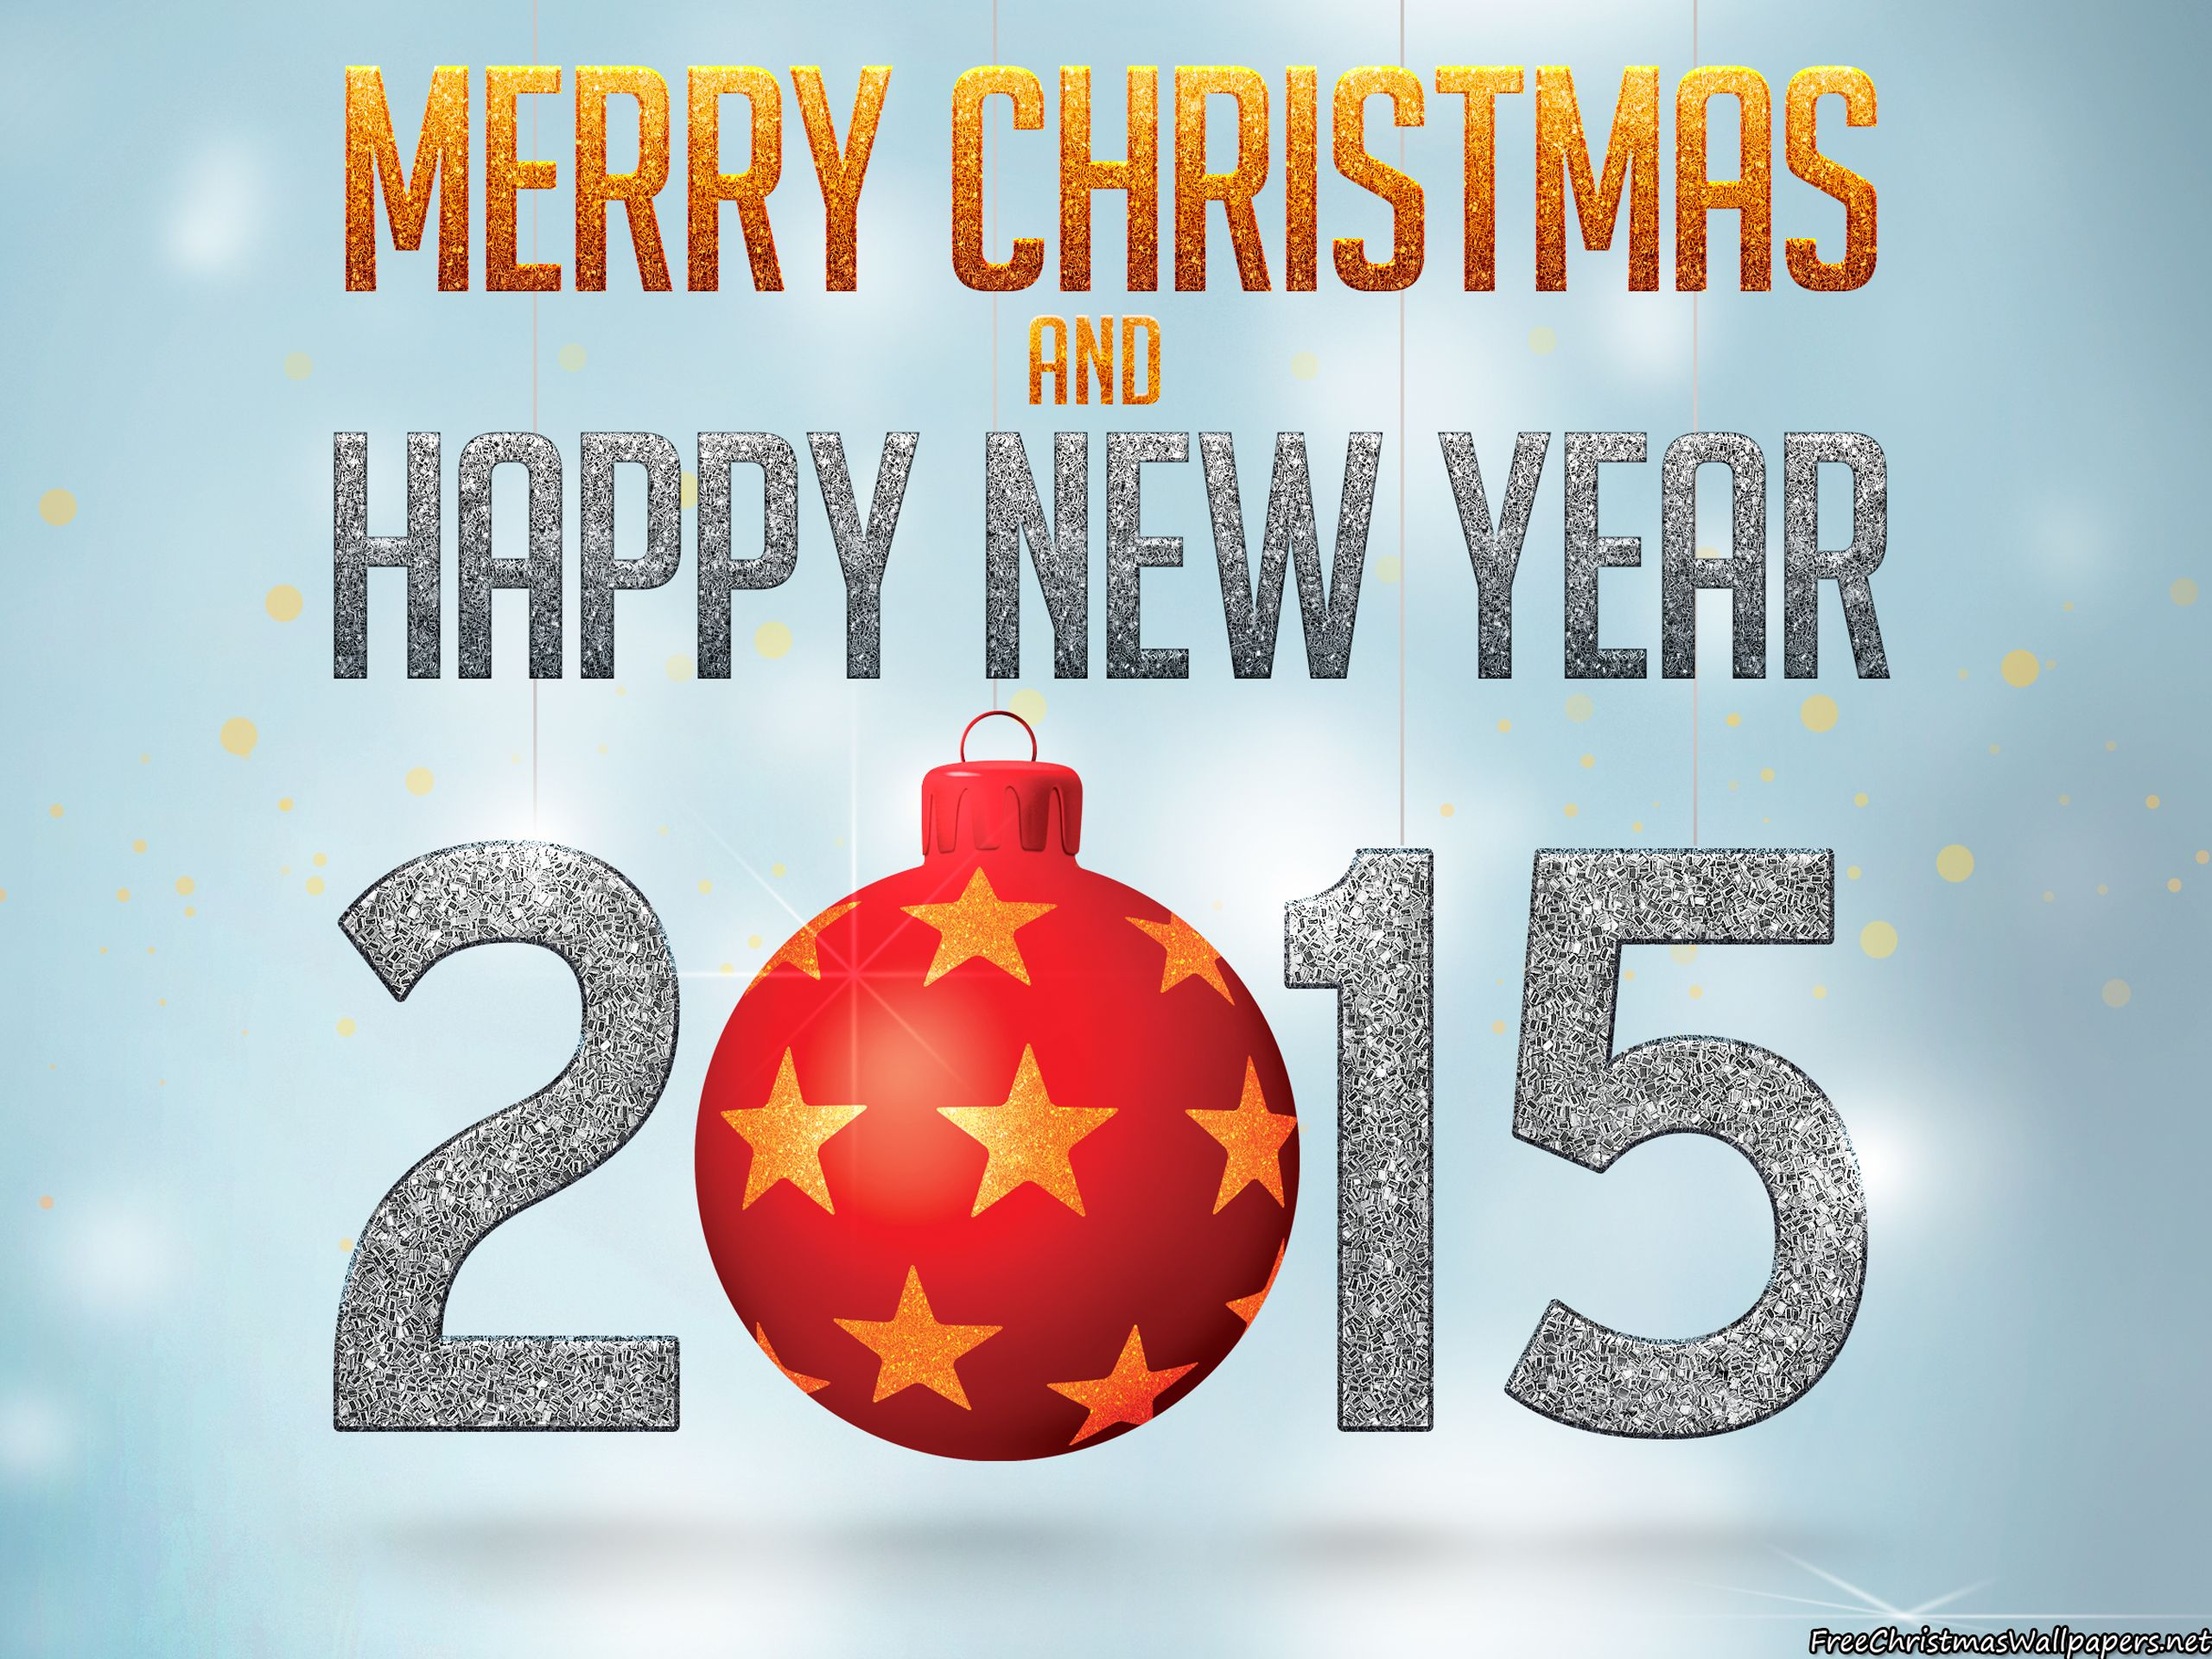 Merry Christmas 2015 And Happy New Year 2016 Merry Christmas And